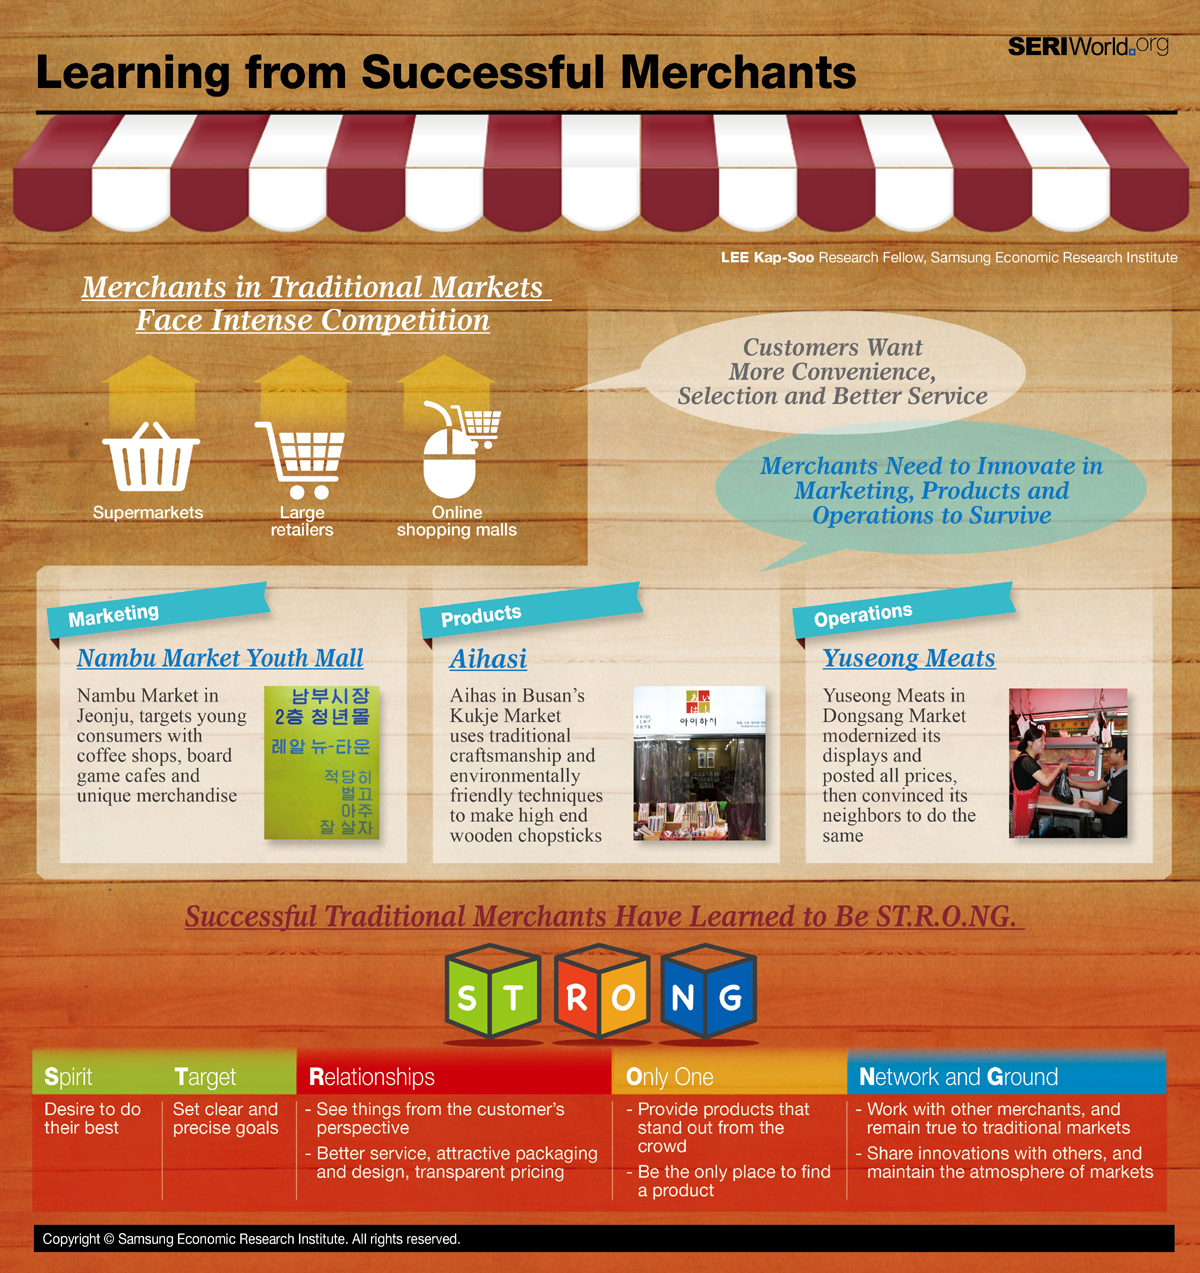 Learning from Successful Merchants